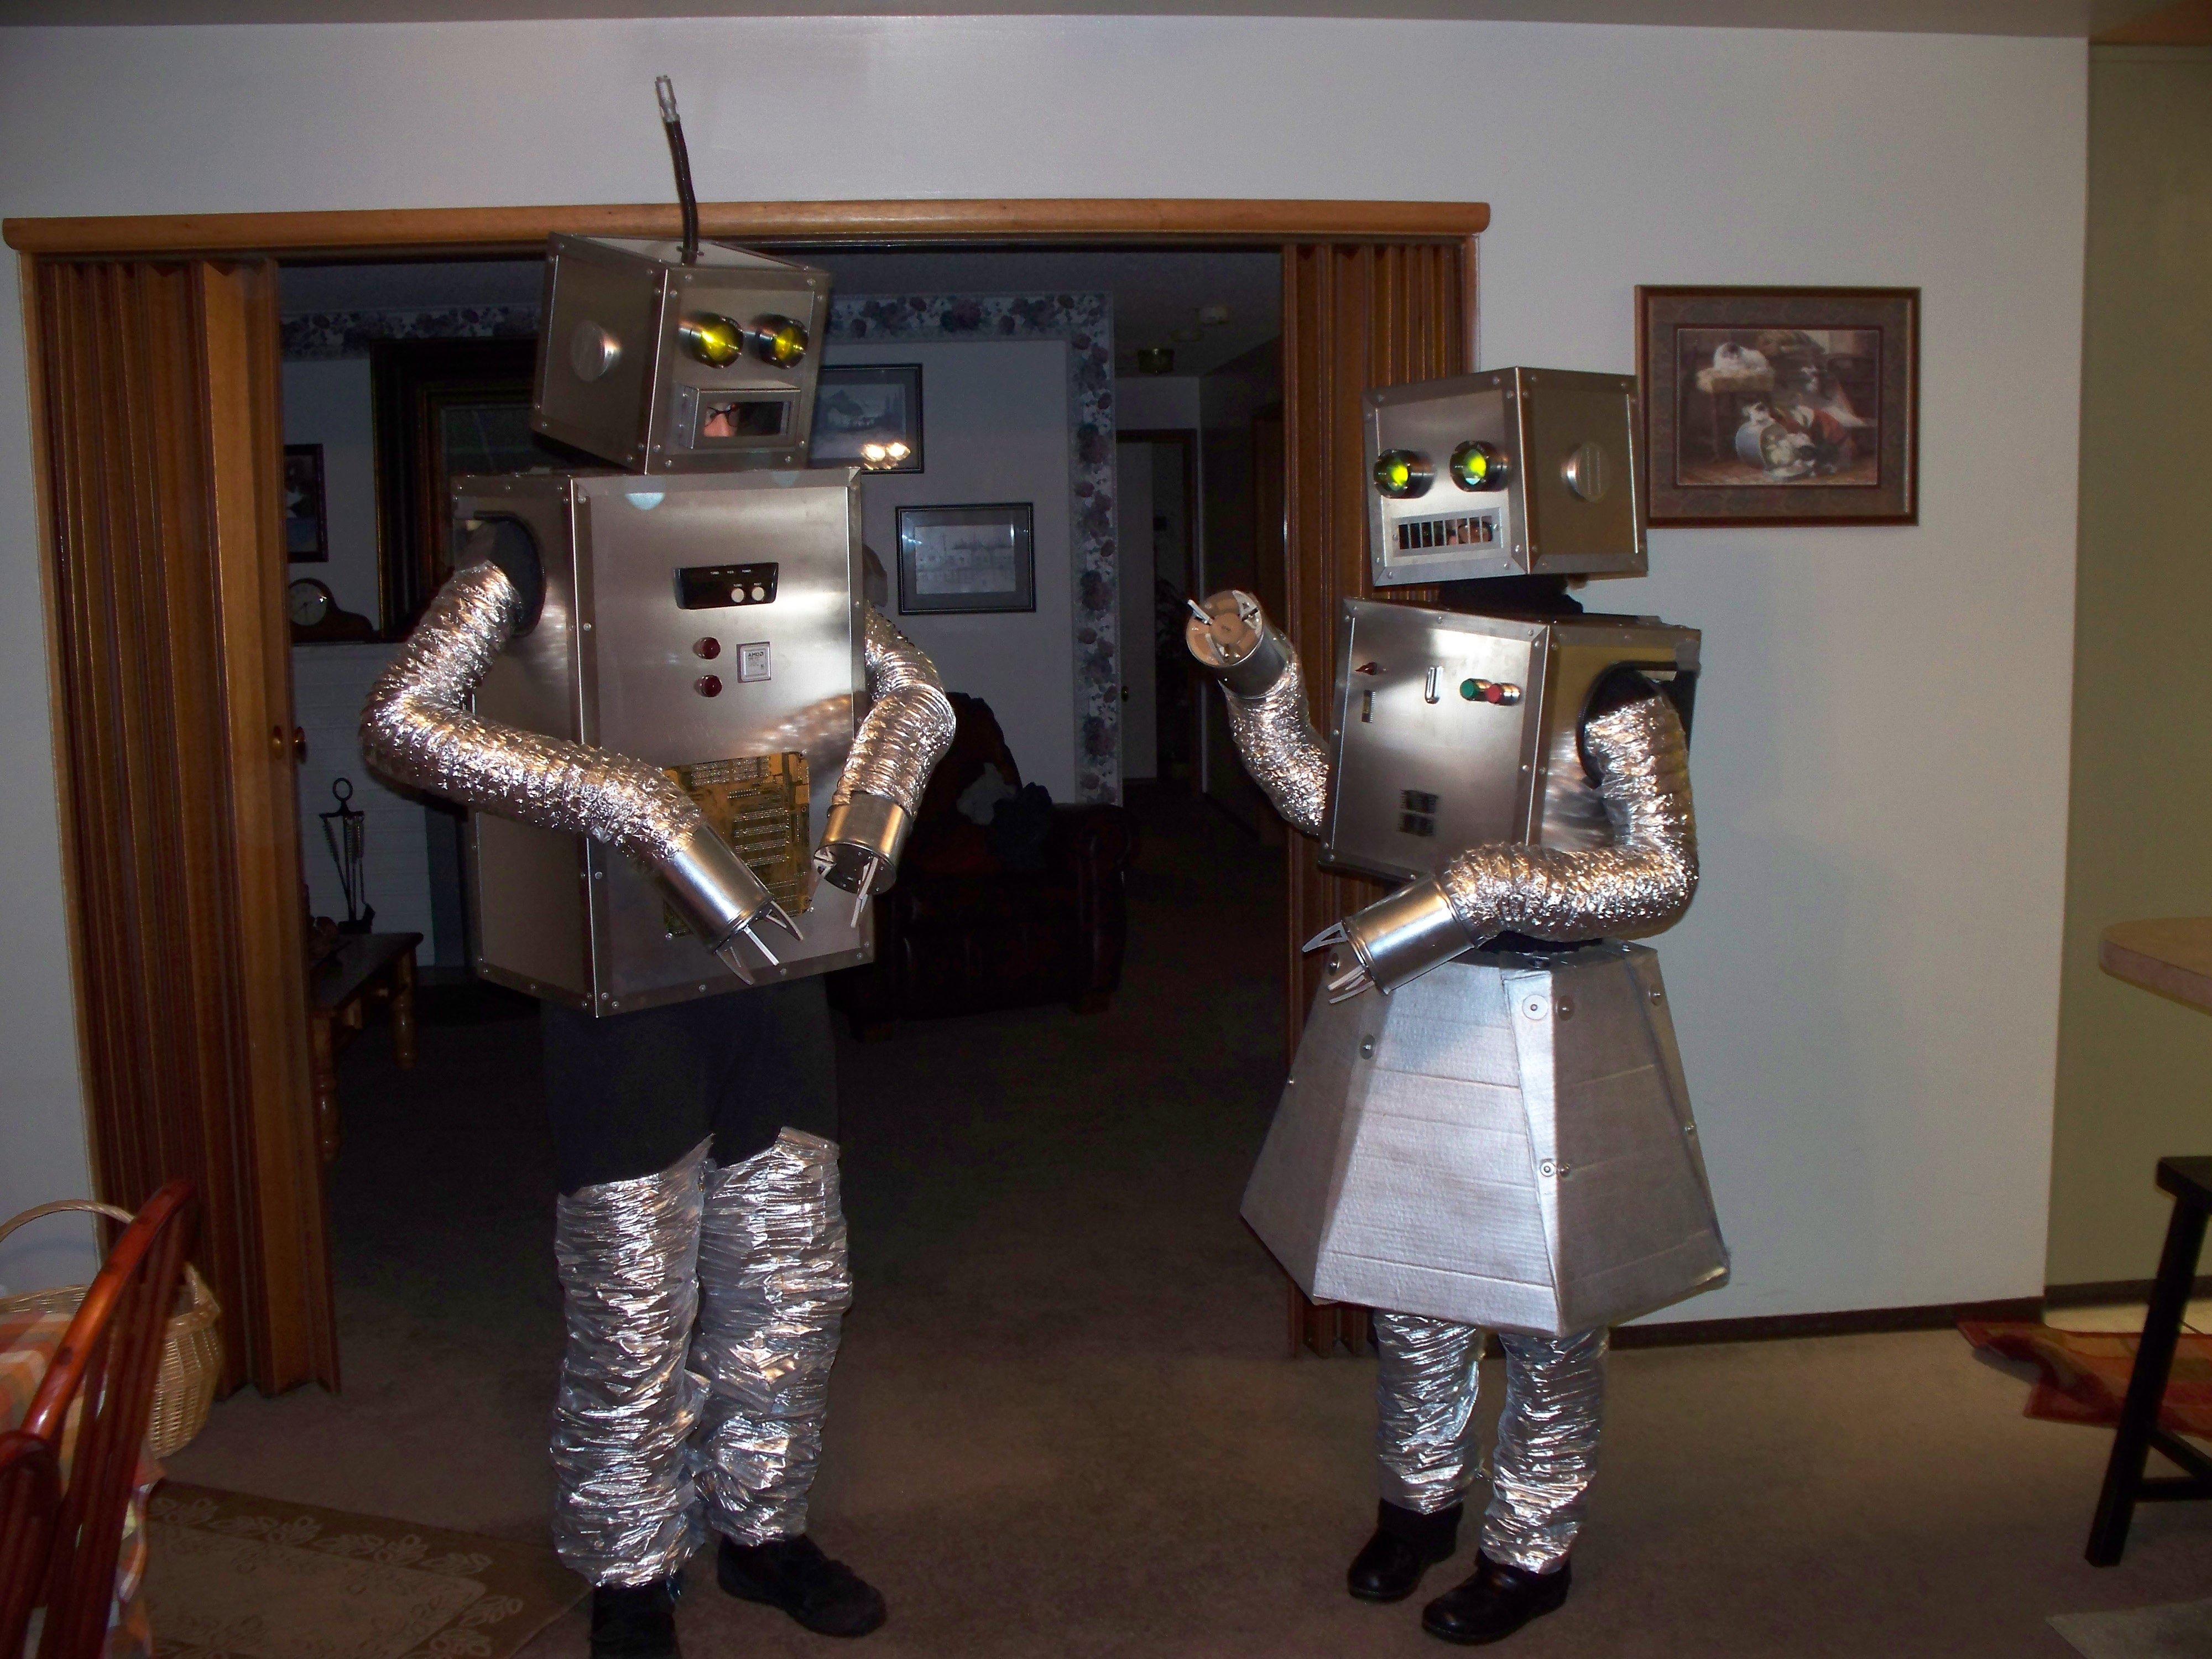 Costume Halloween Robot.How To Build Robot Halloween Costumes 9 Steps With Pictures Instructables